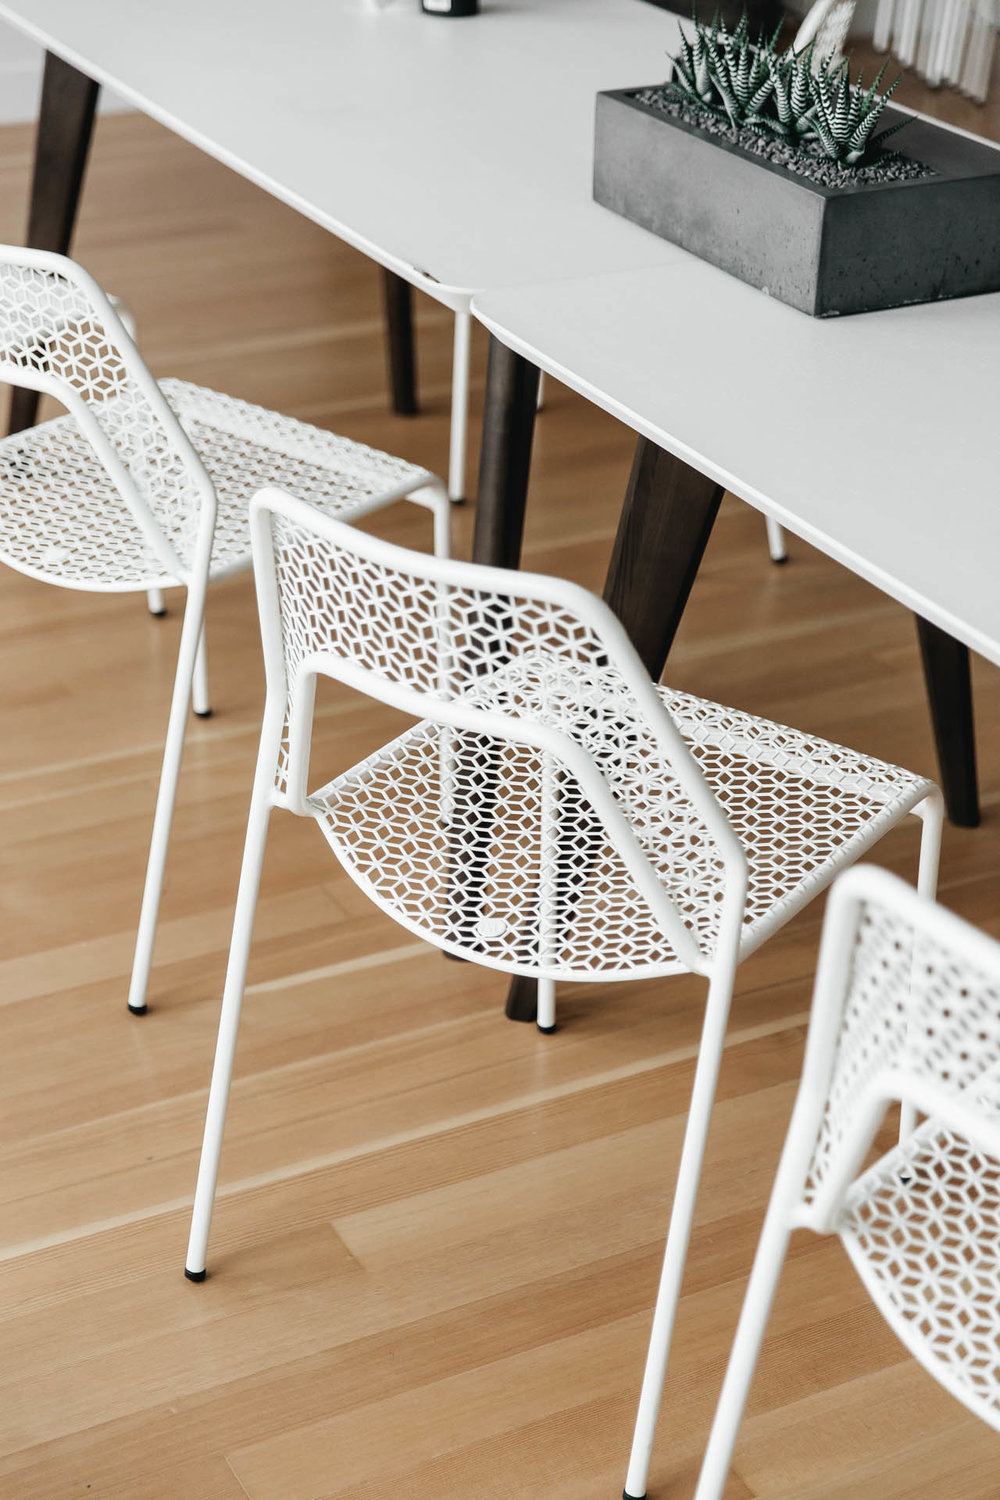 Silk_Road_Tea-14.jpg